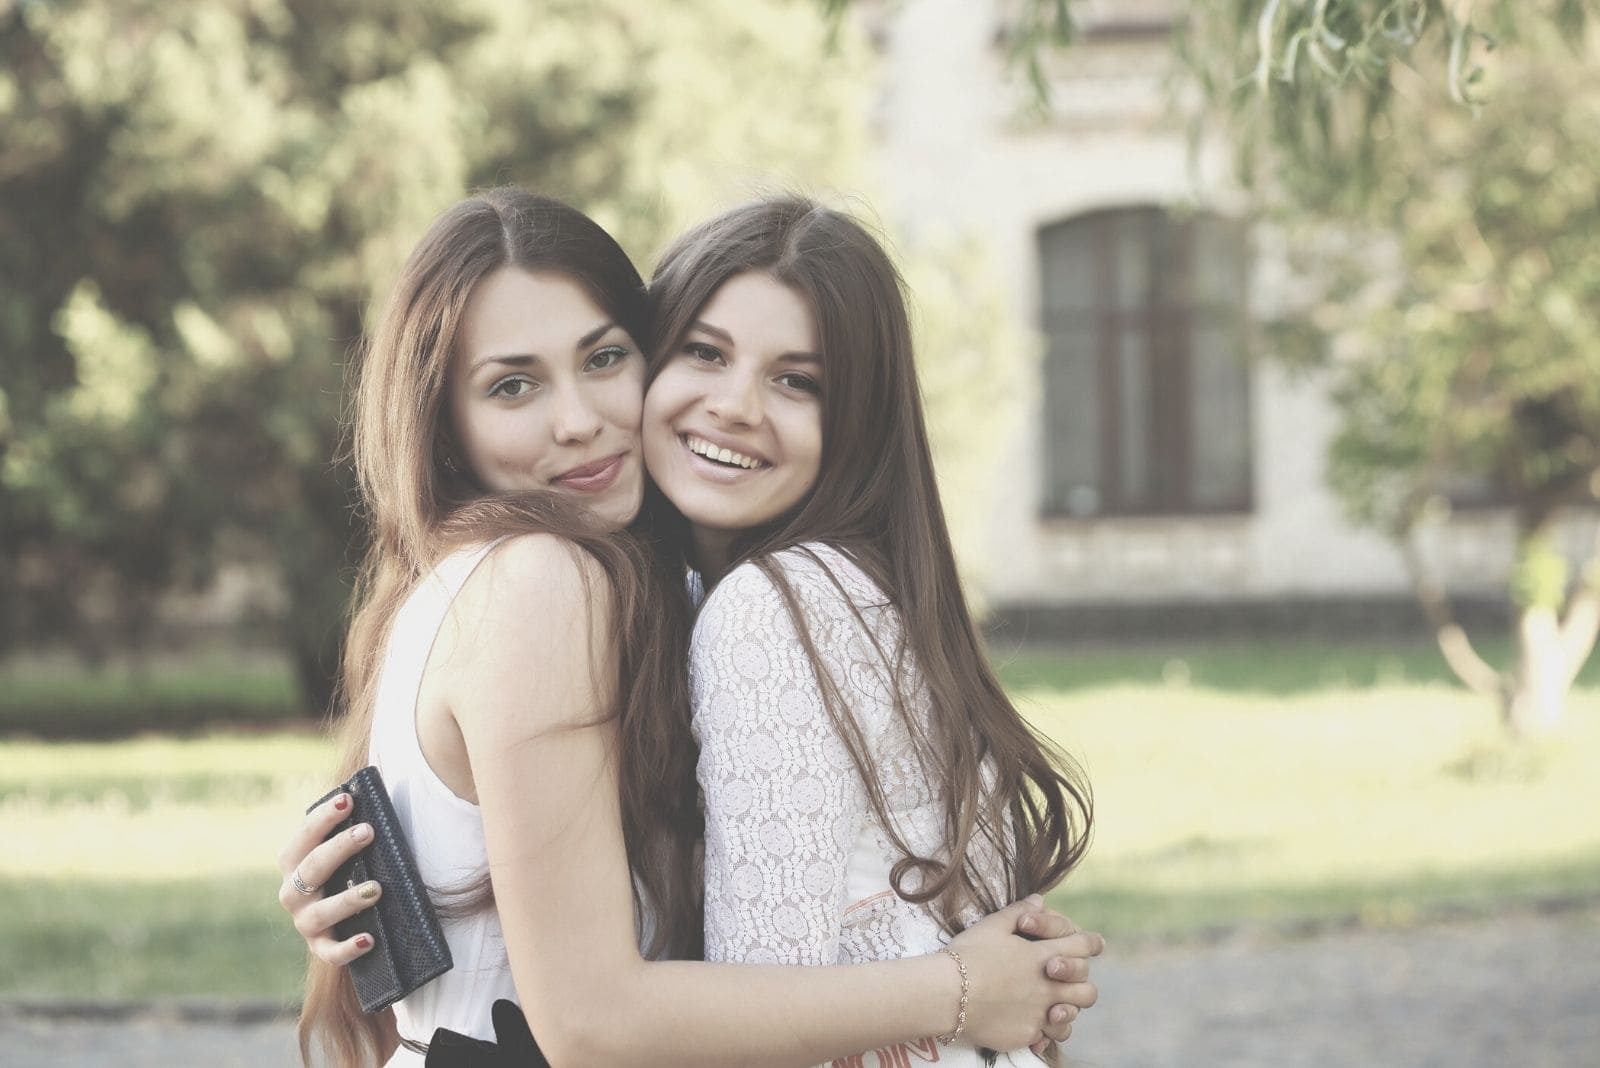 girlfriends hugging outdoors looking at the camera and smiling